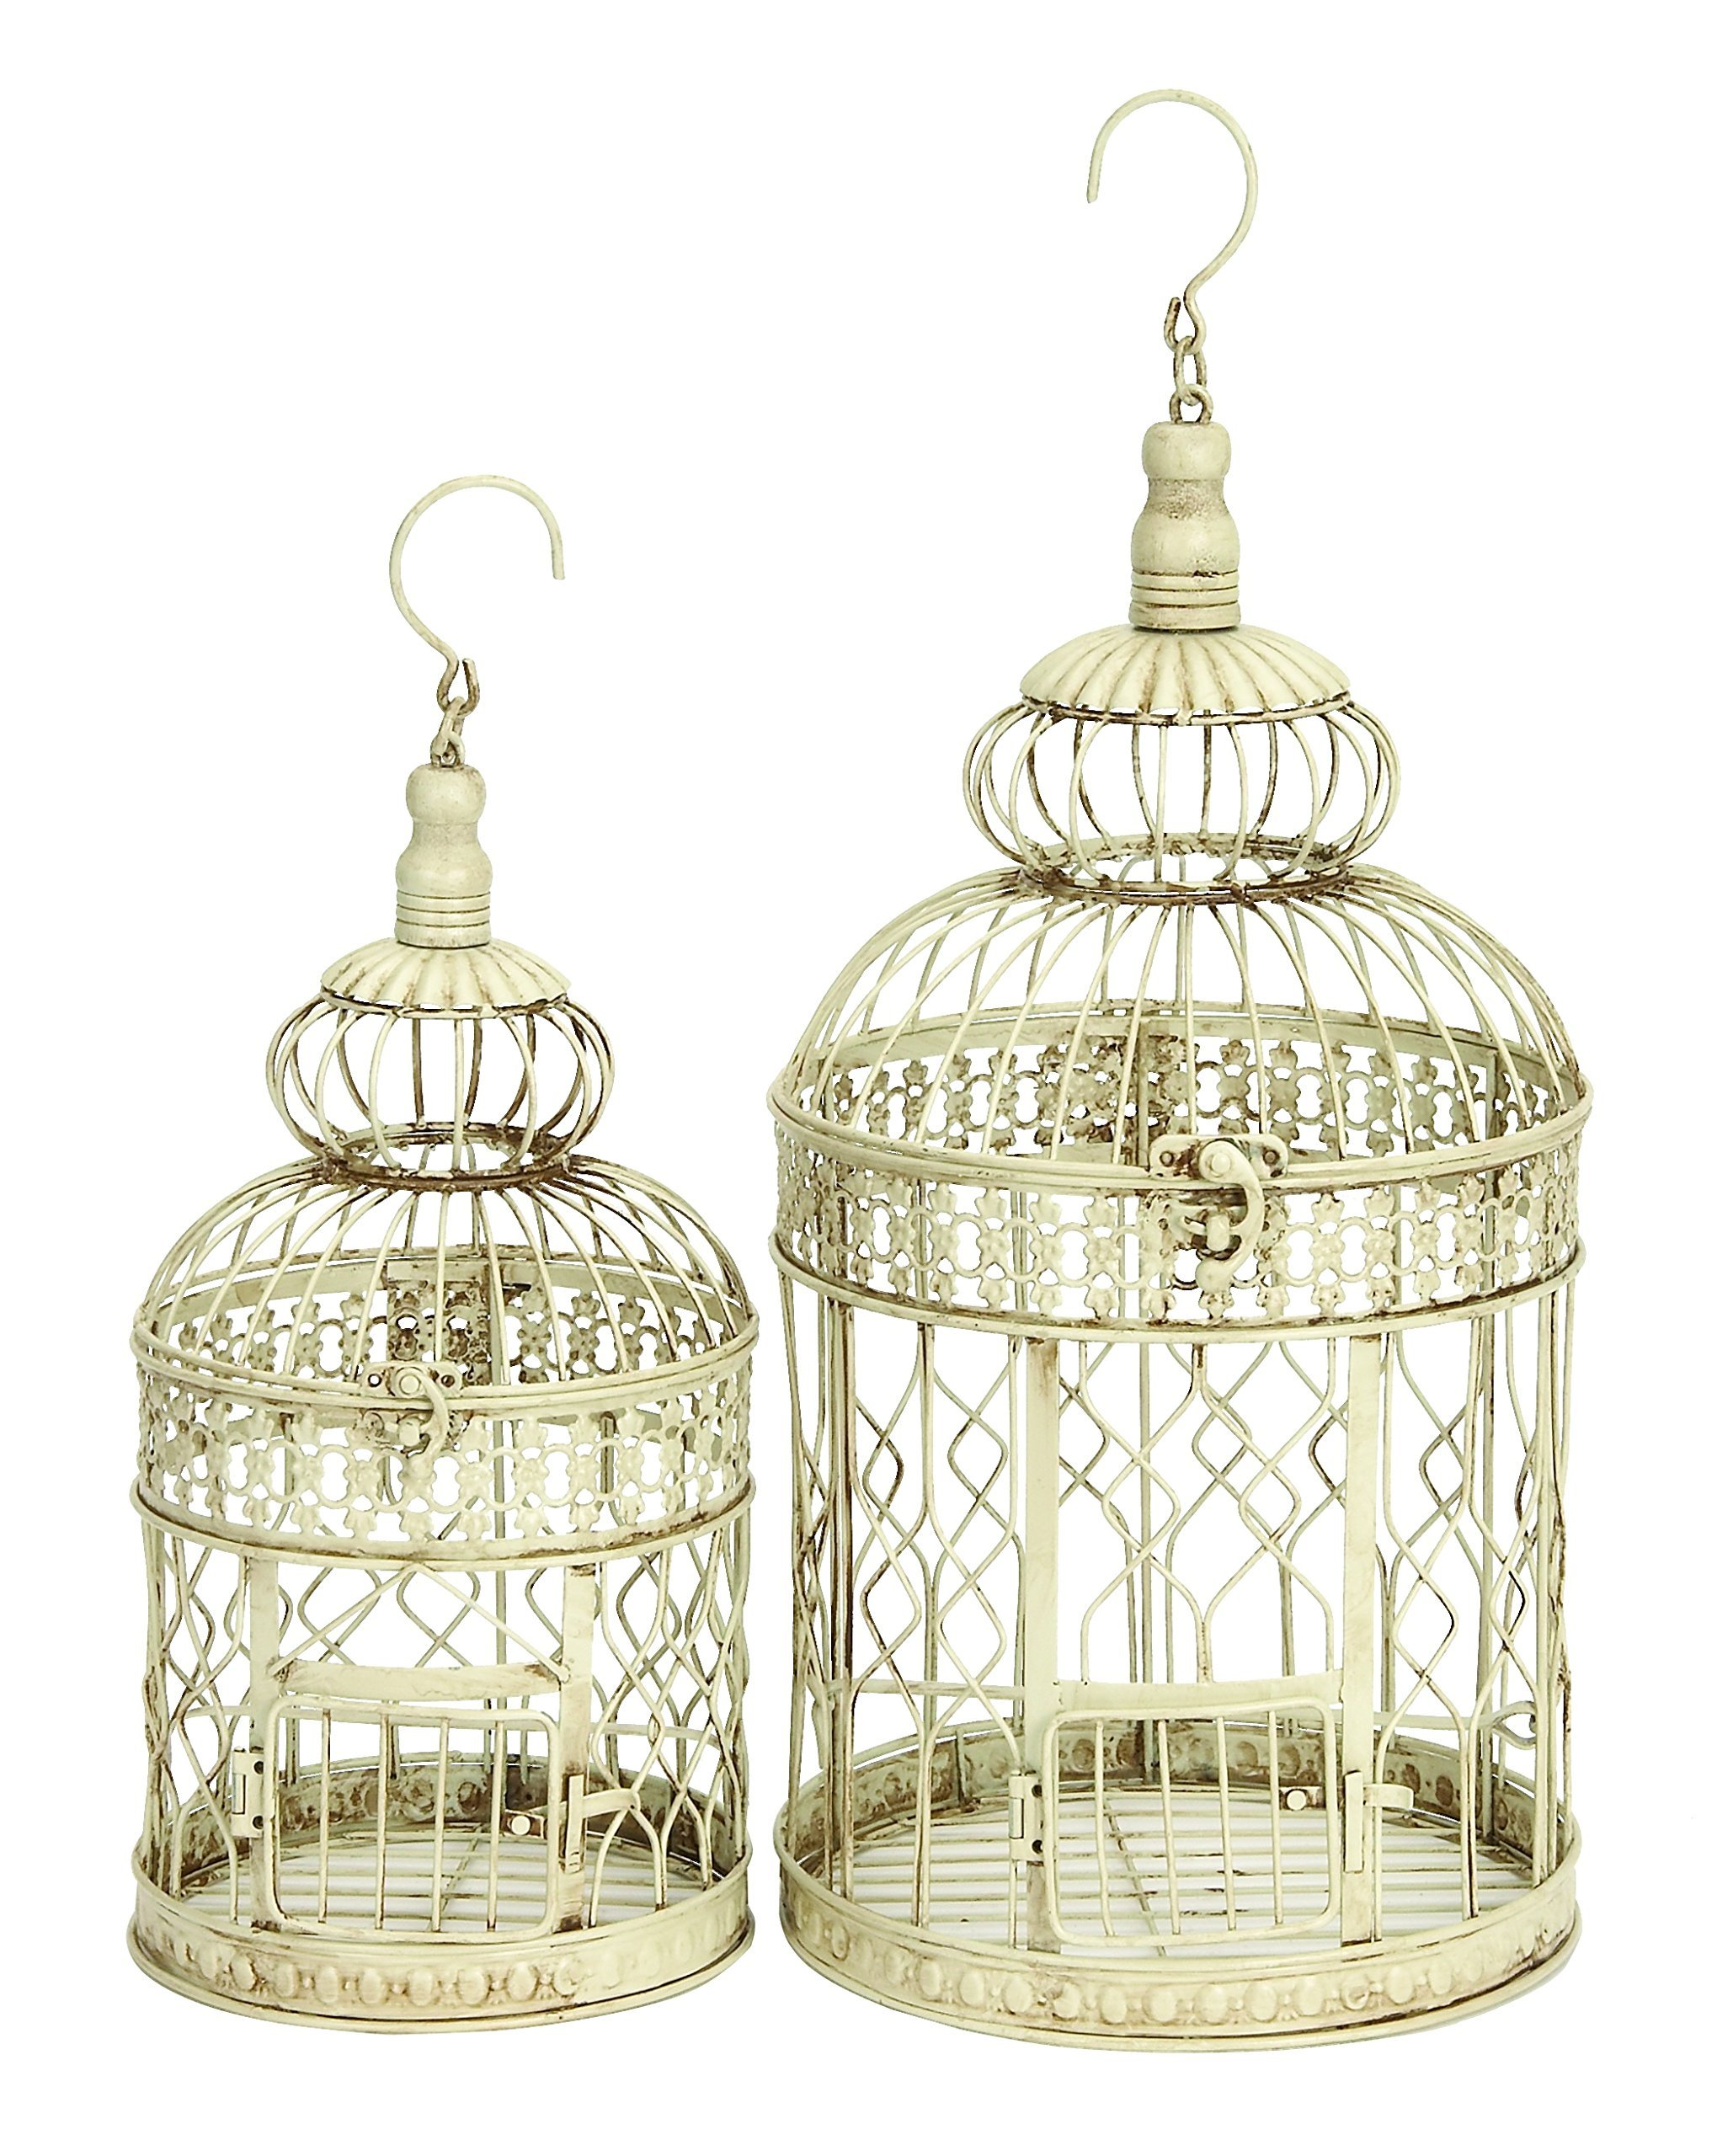 NEW Vintage Antique Bird Cage Decorative Wedding Wall Hanging